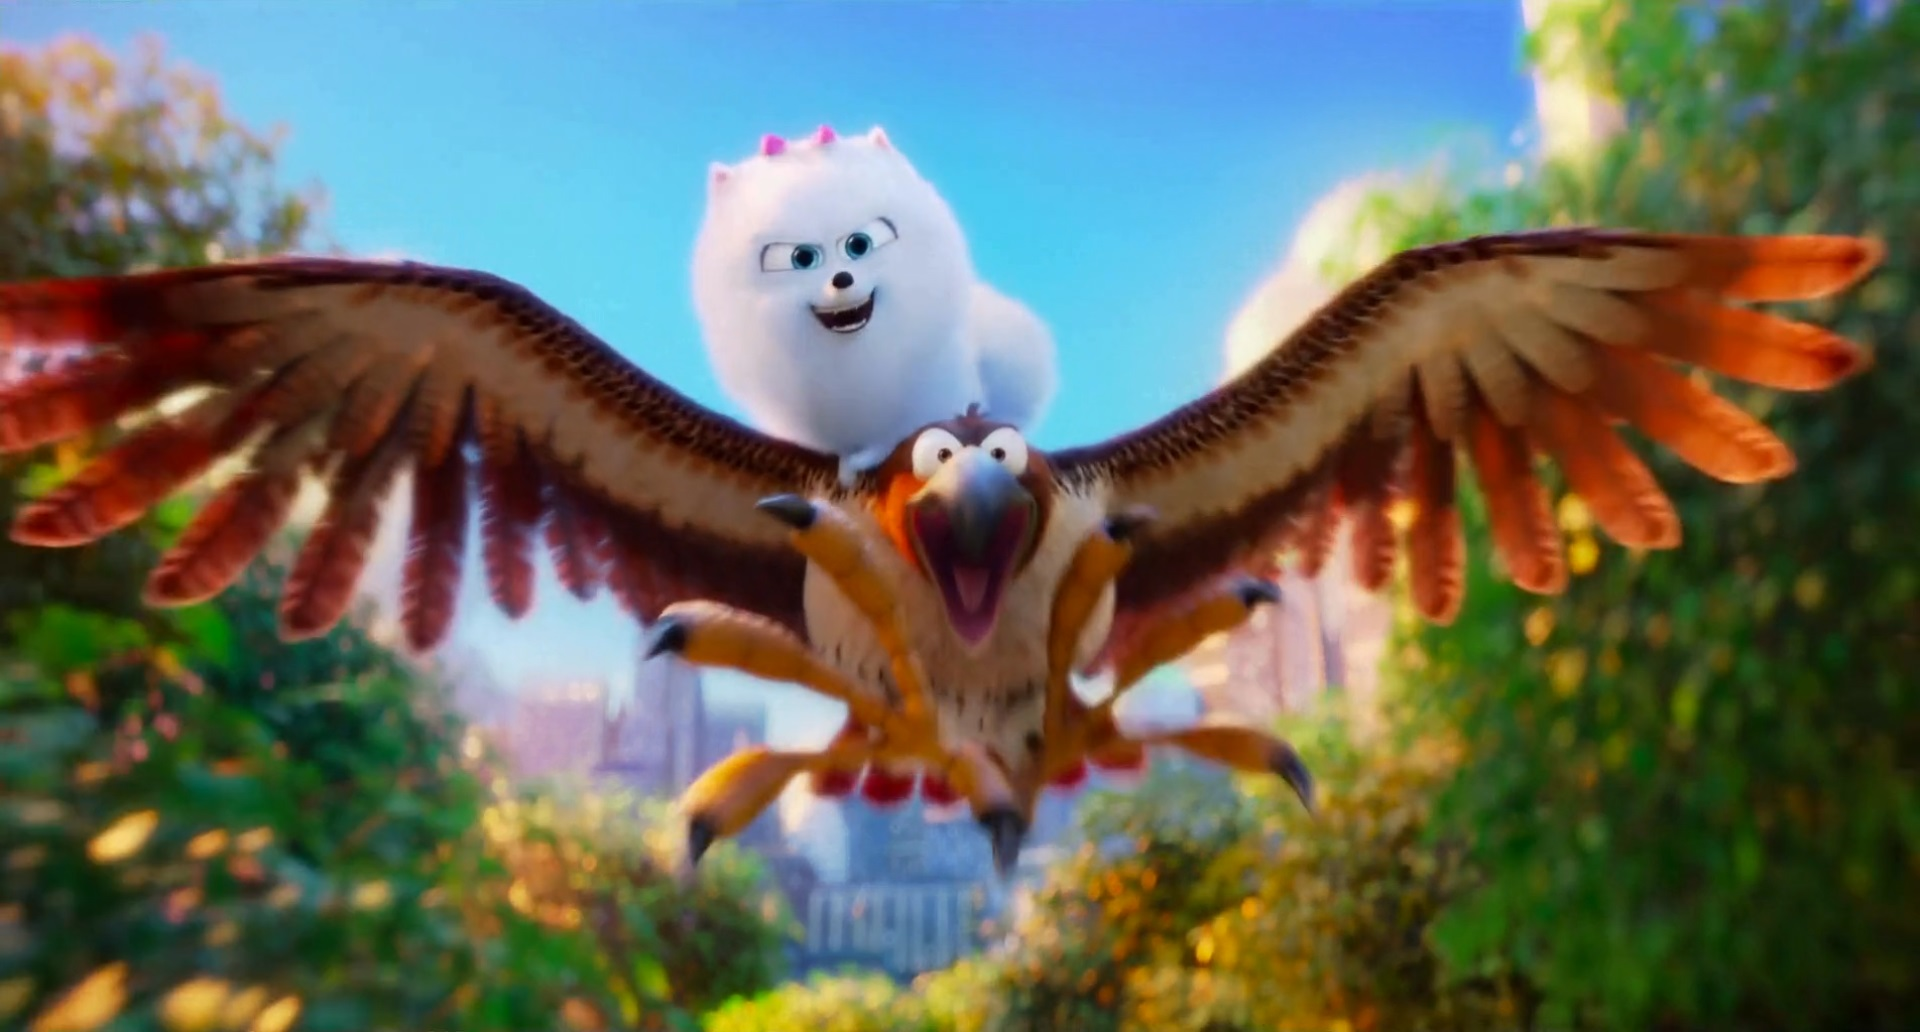 Image Duo In Imagination Jpeg The Secret Life Of Pets